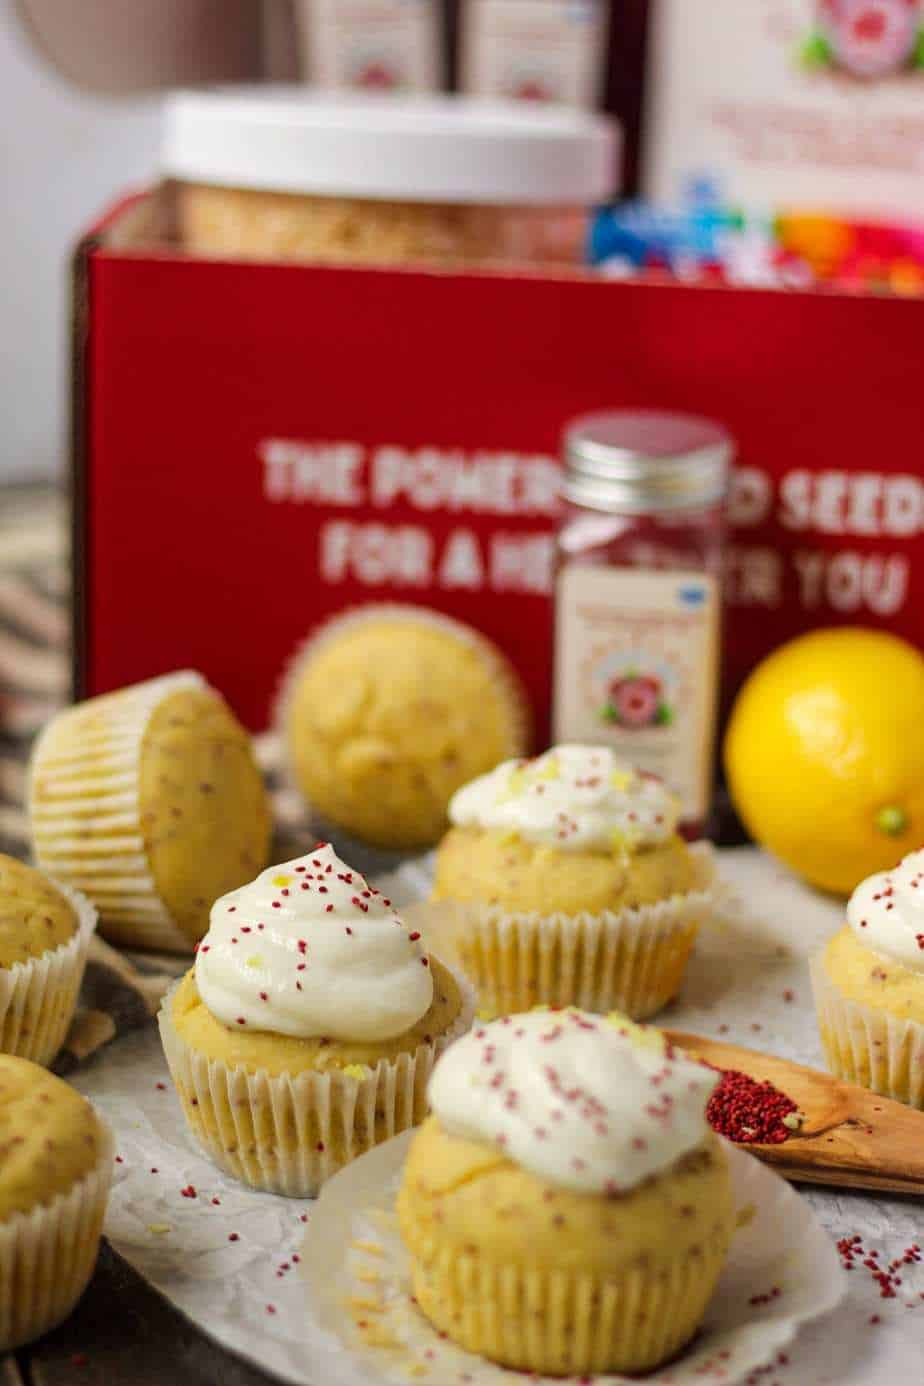 side angle shot of Lemon Cranberry Seed Cupcakes with Lemon Greek Yogurt Frosting on top parchment paper with cranberry seeds scattered on parchment and a wooden spoon filled with cranberry seeds in bottom right of shot. Cranberry seed container and box in background.